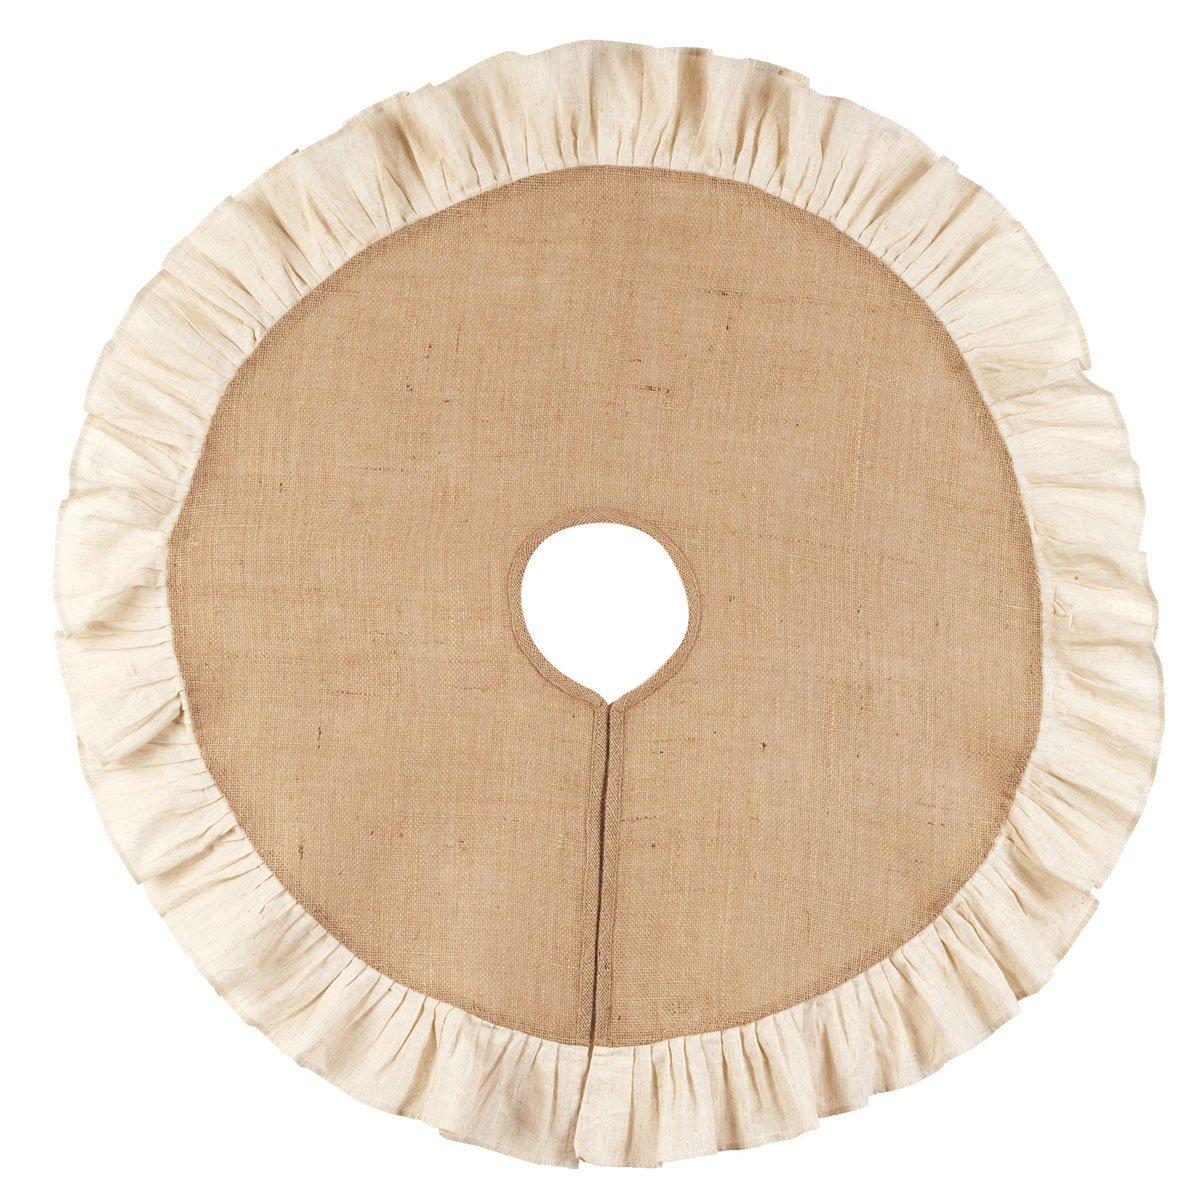 Burlap and Cream 36 Ruffle Country Tree Skirt by The Country House Collection